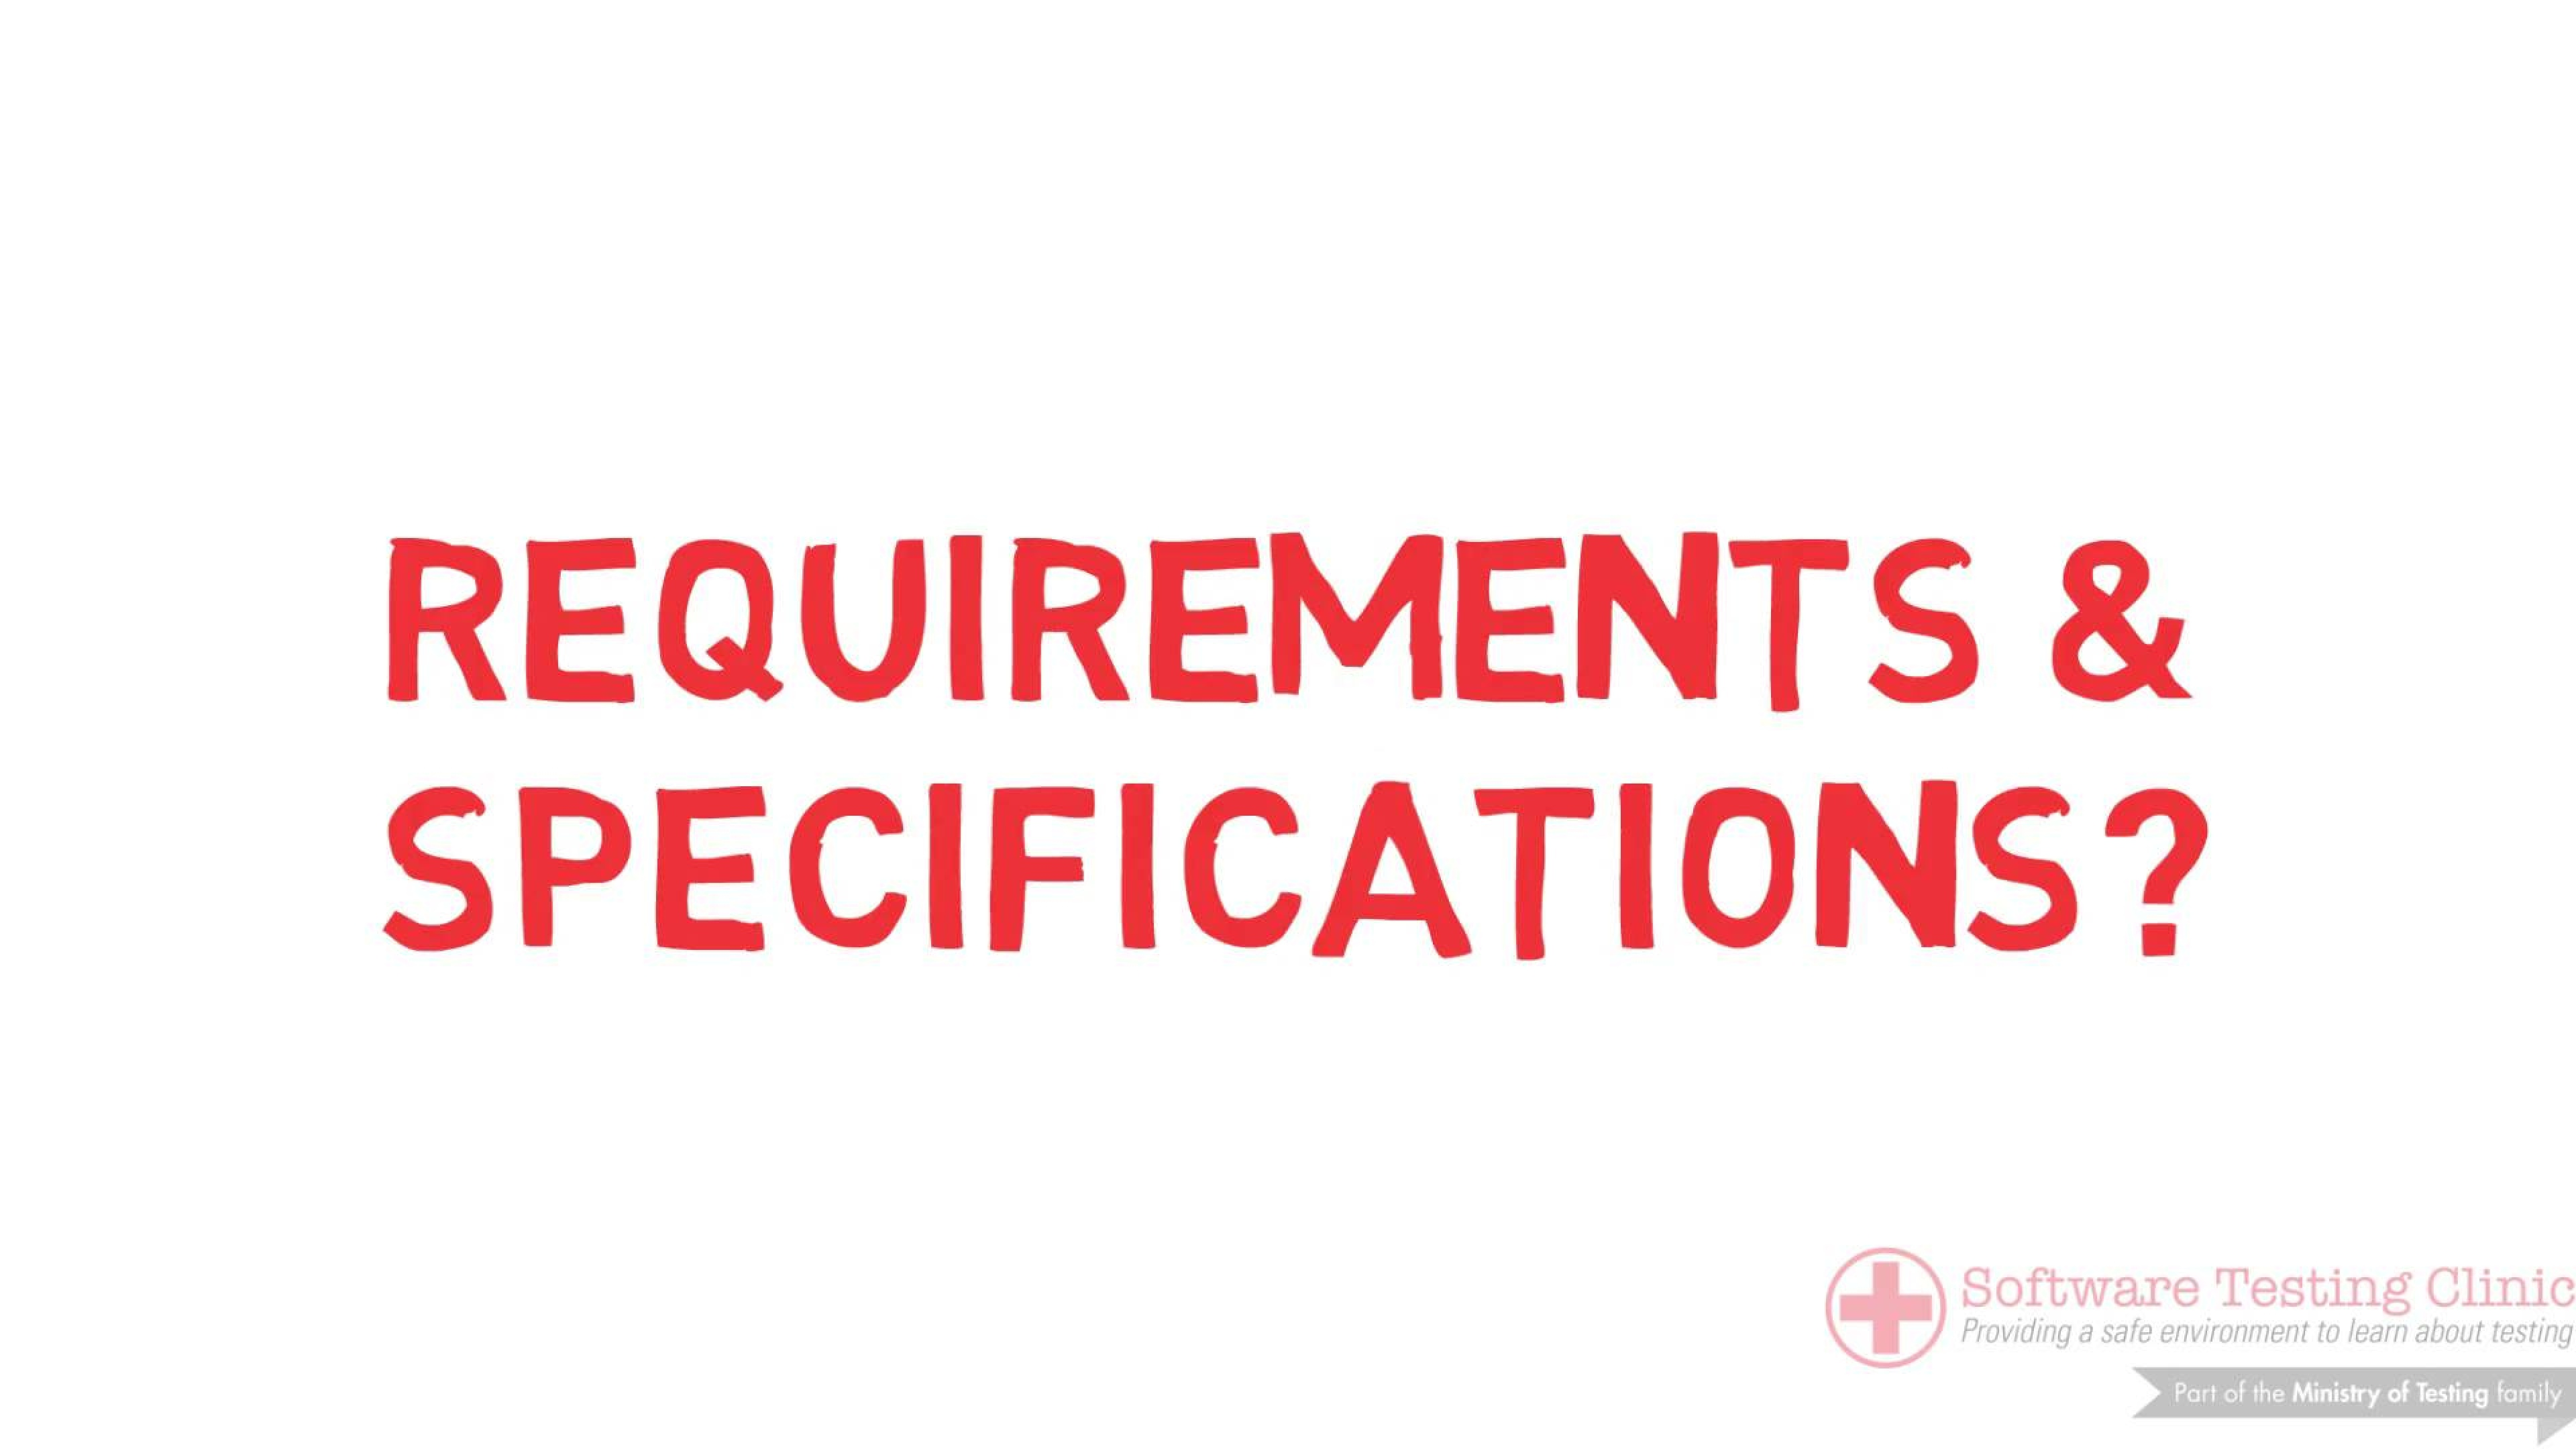 99 Second Introduction to Requirements & Specifications